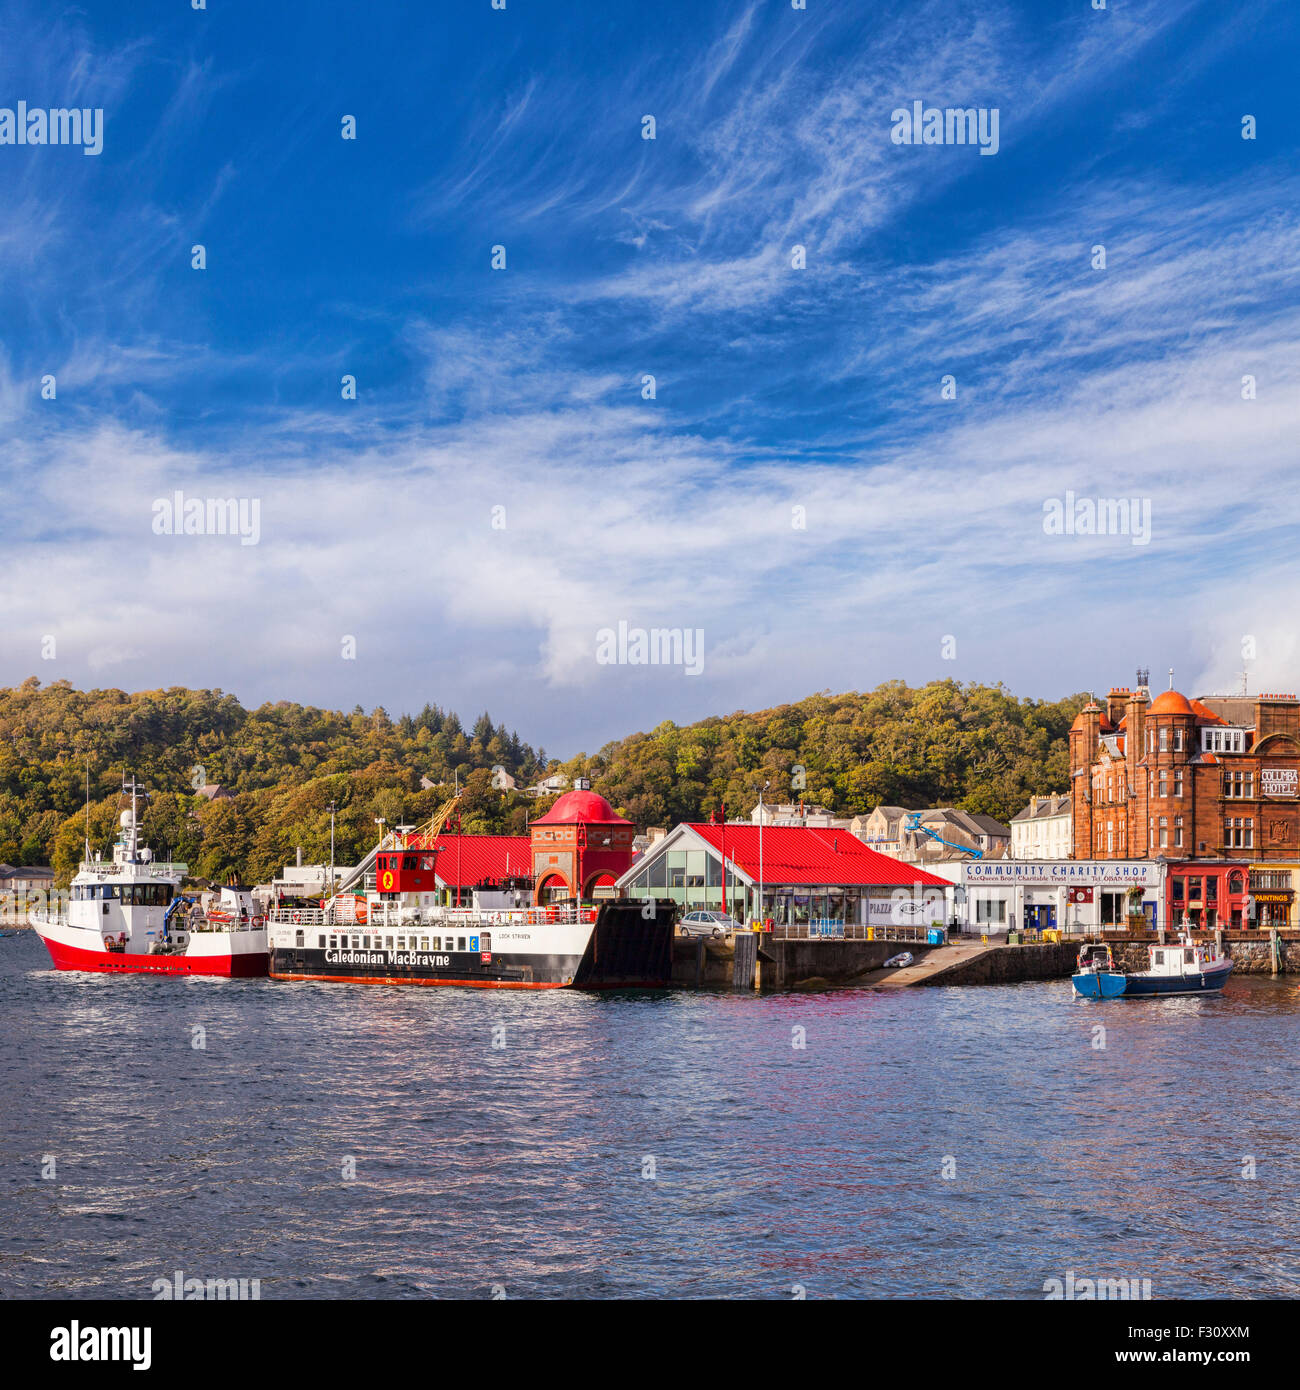 Oban Harbour, Argyll and Bute, Scotland, UK. - Stock Image